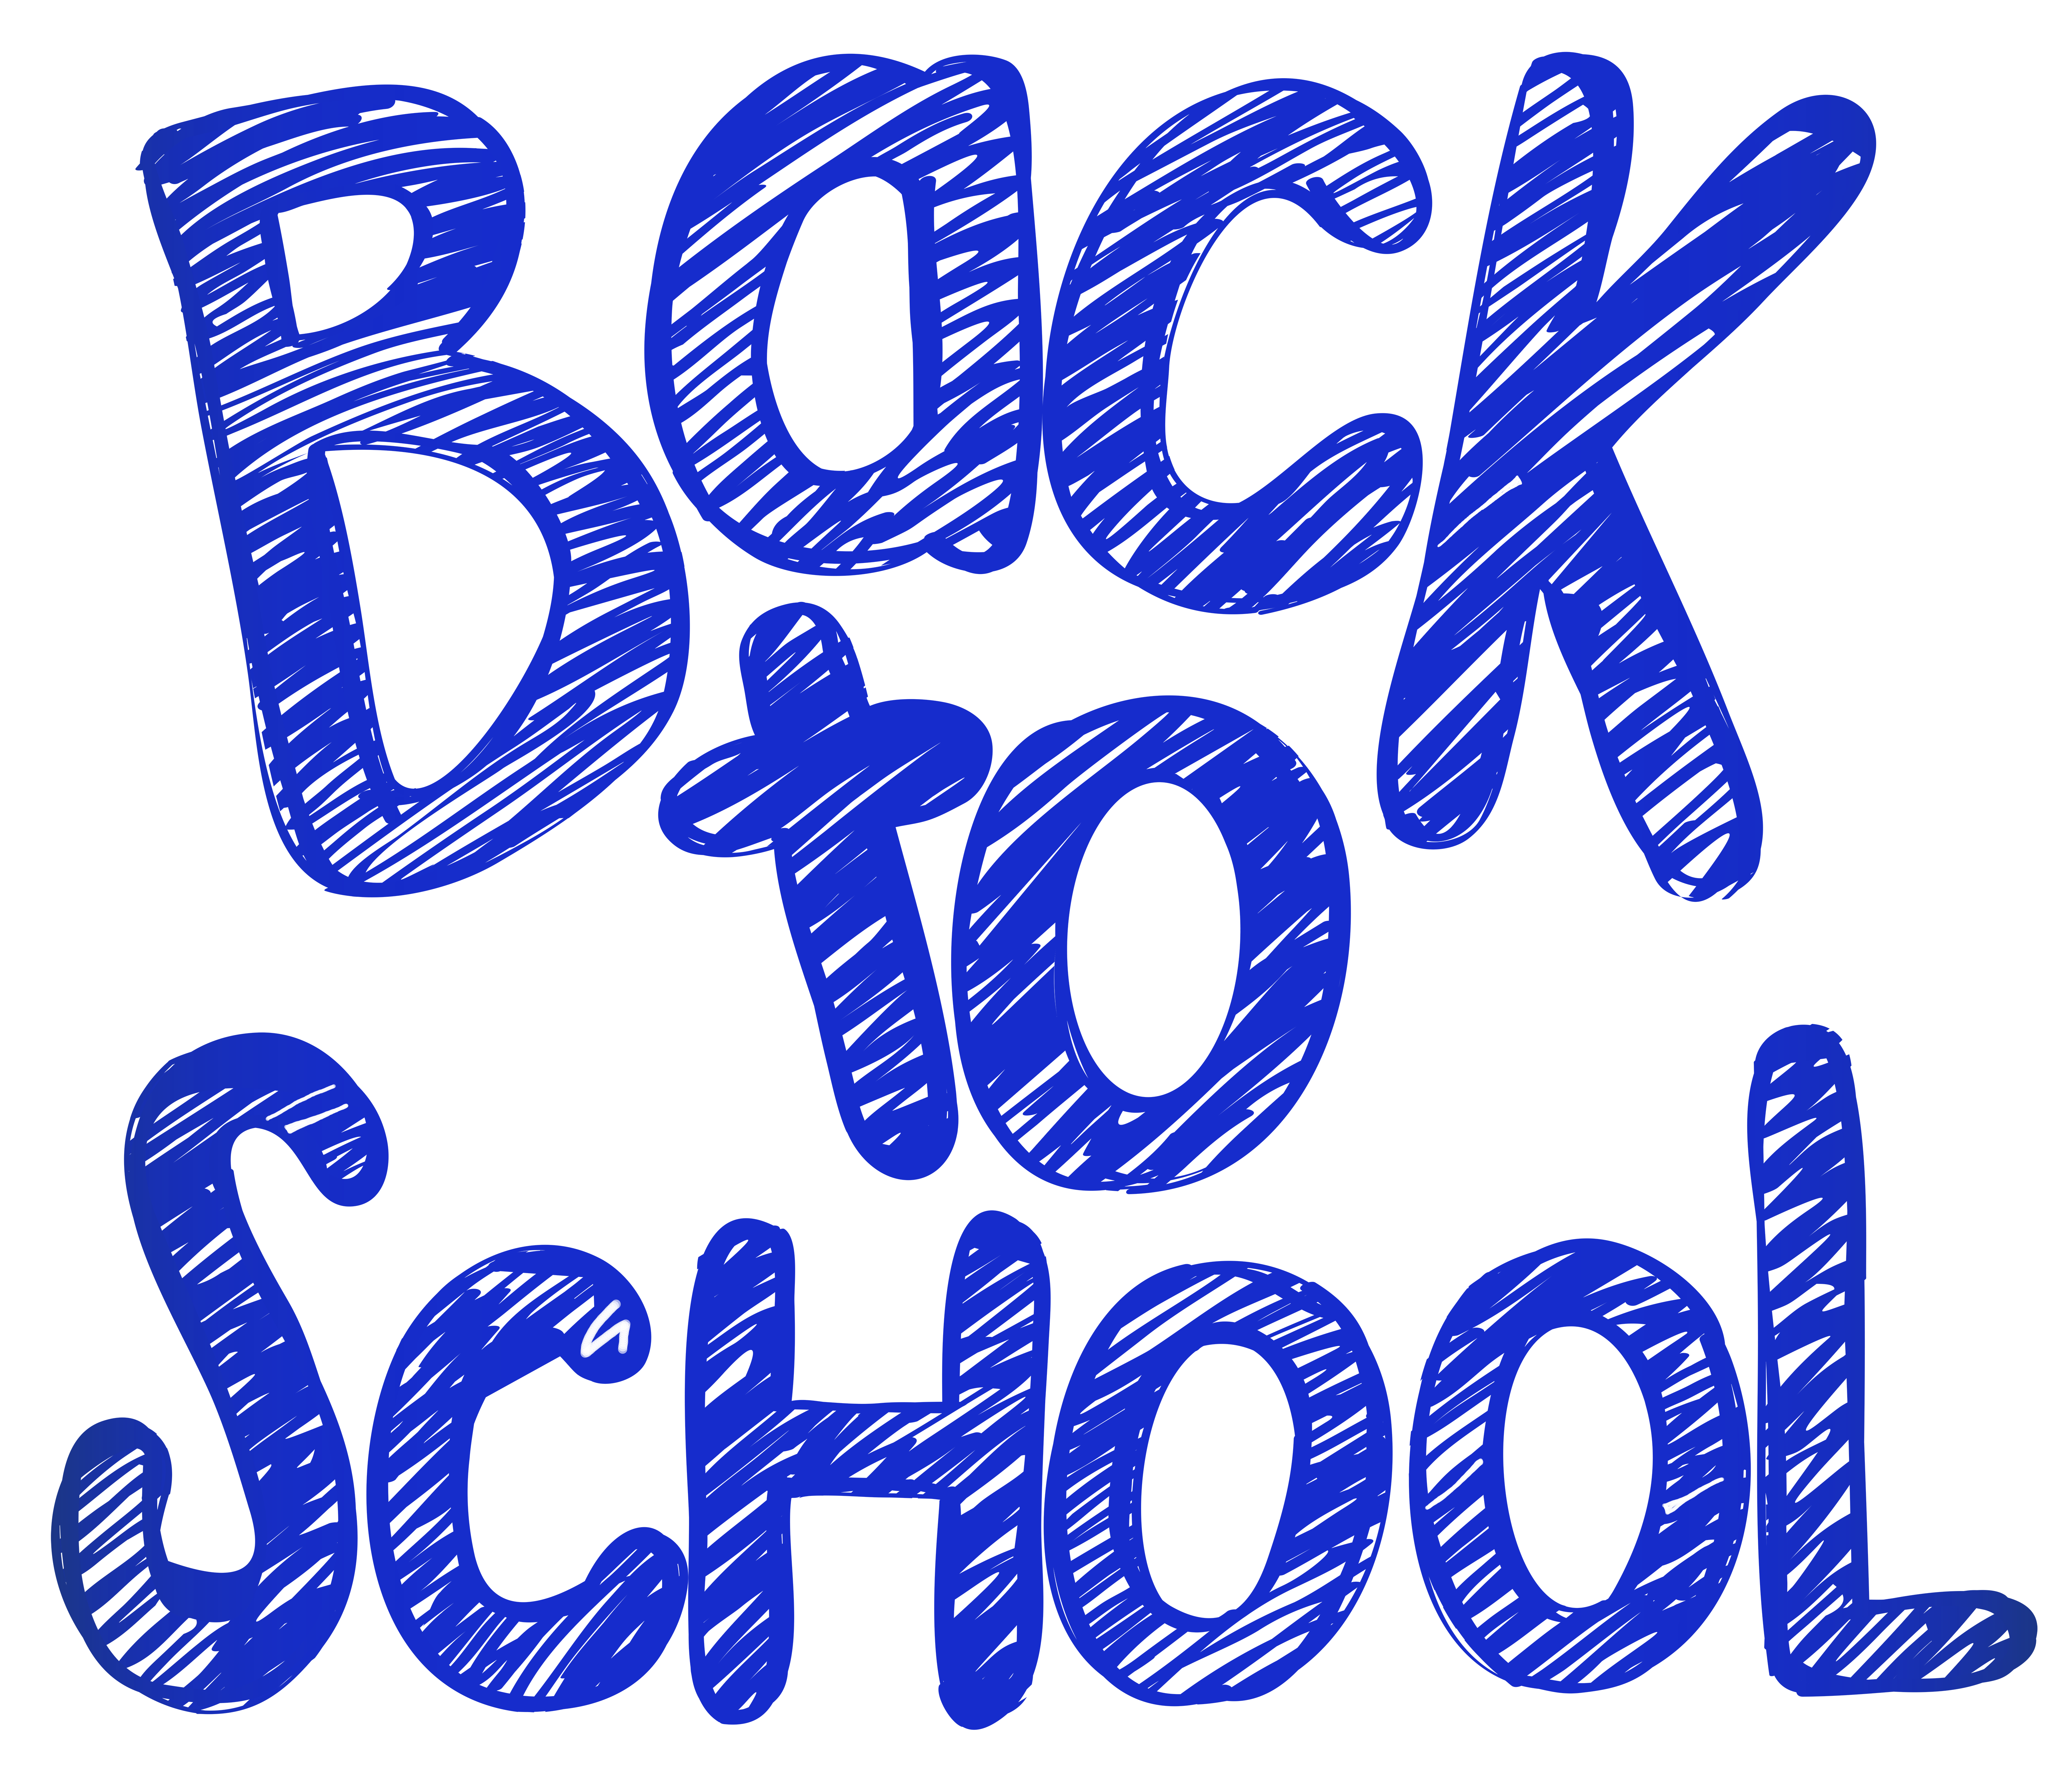 Back to School PNG Clip Art Image.